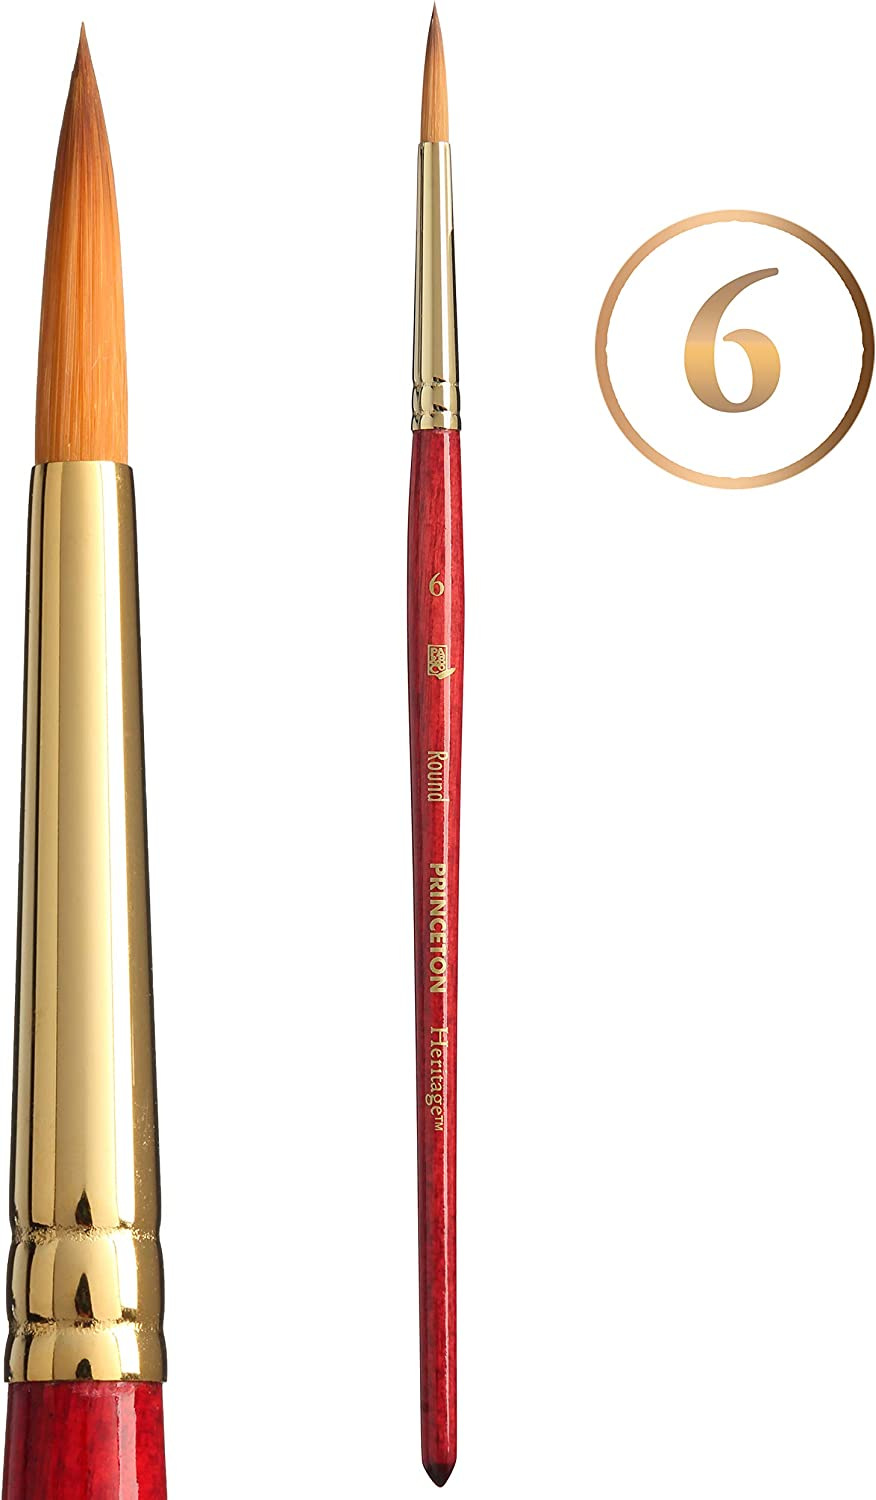 Princeton Heritage Series 4050 Round Synthetic Sable Size 24 Golden Taklon Brush for Watercolor /& Acrylic